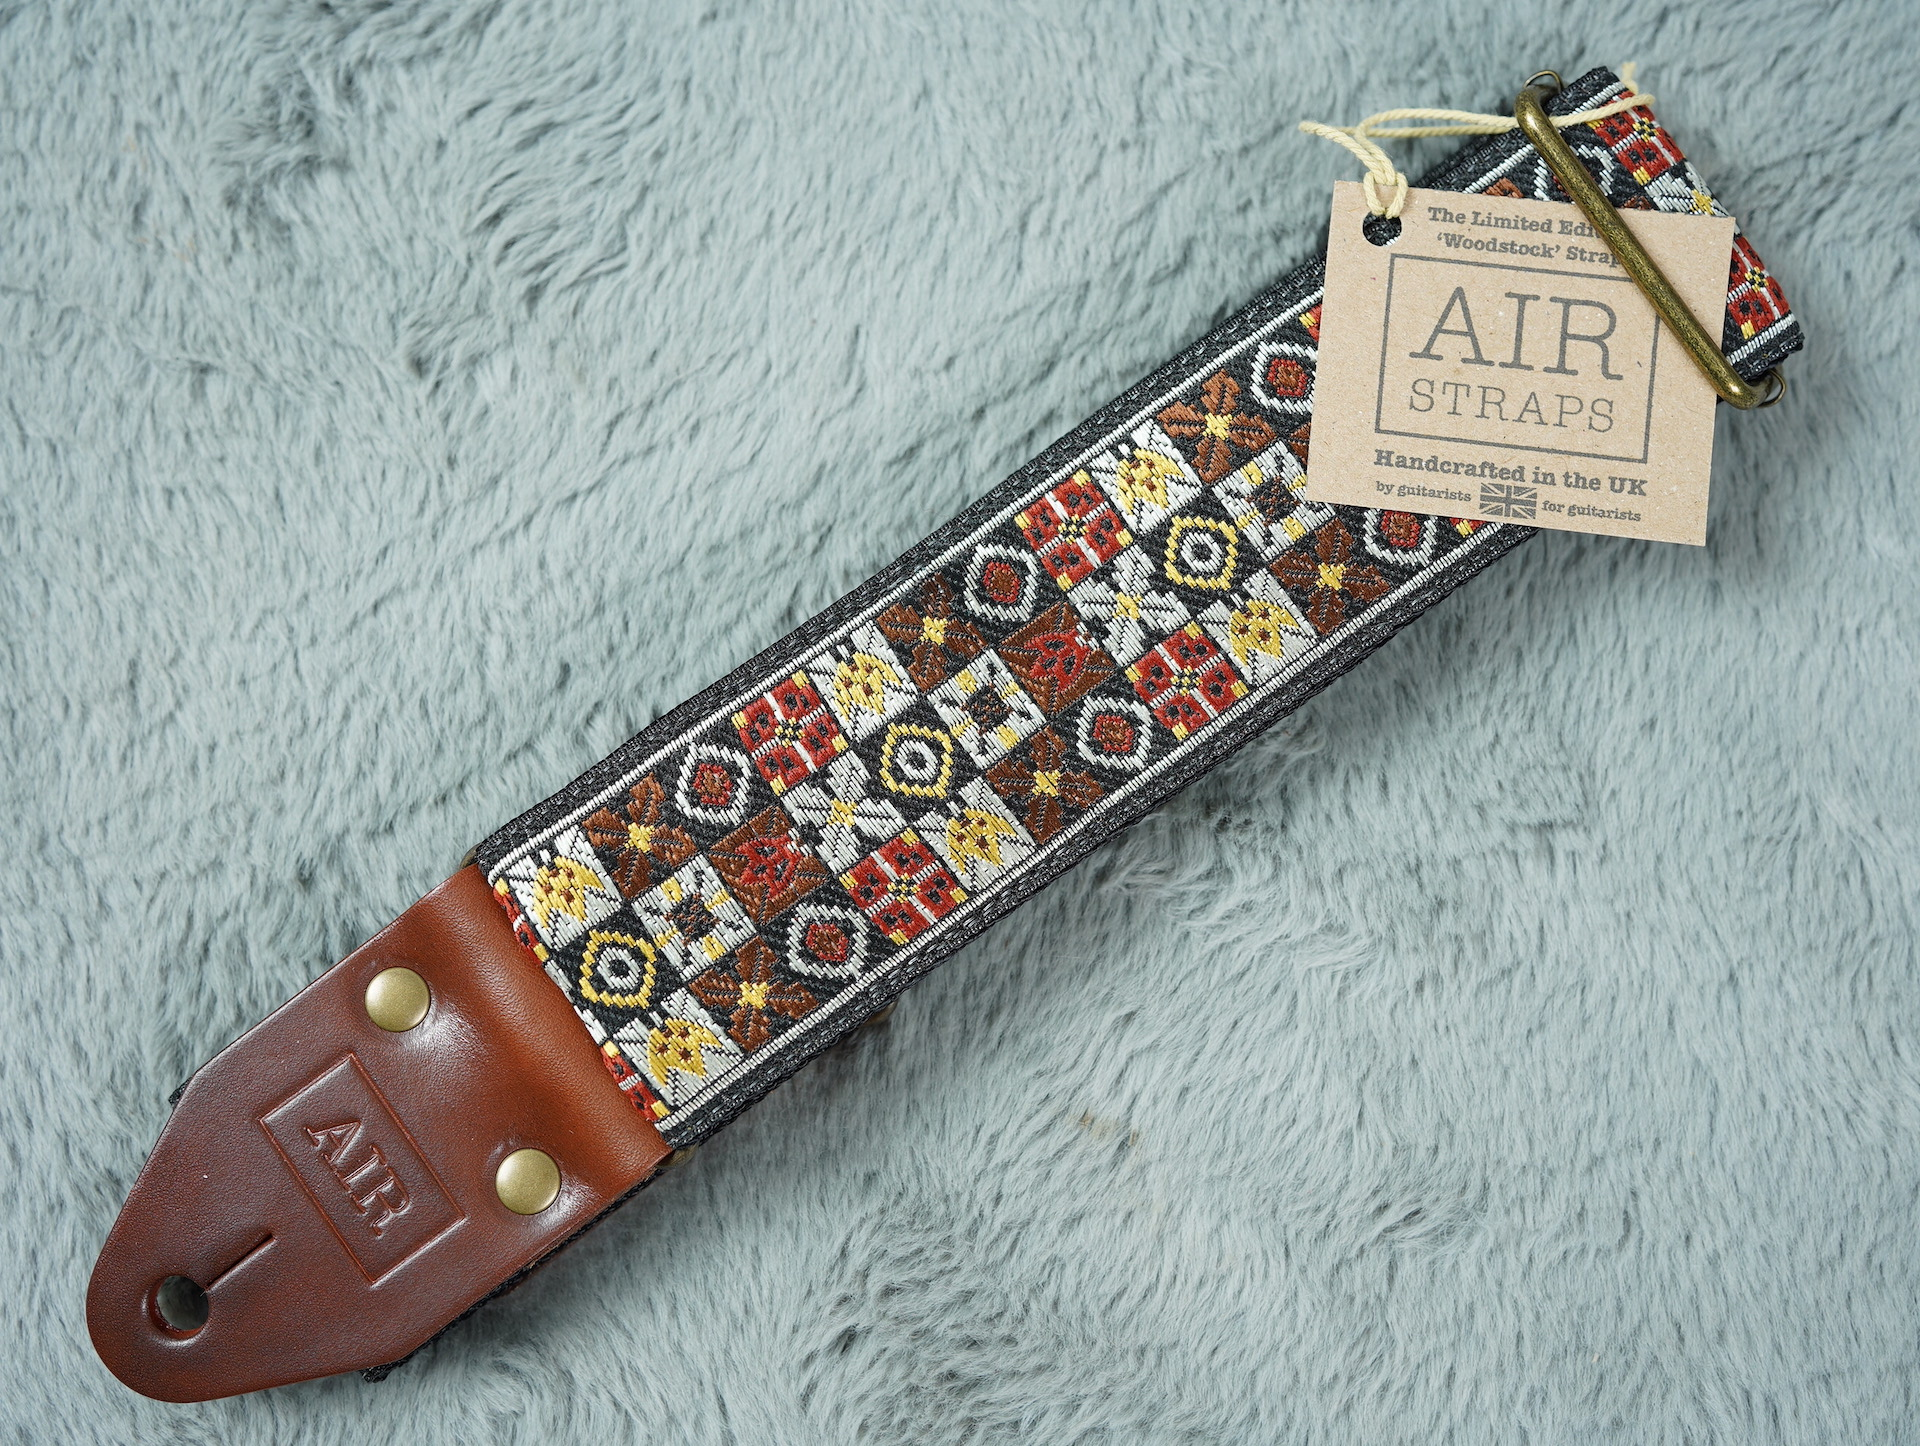 Air Straps Limited Edition 'Woodstock' Guitar Strap - Free Shipping!